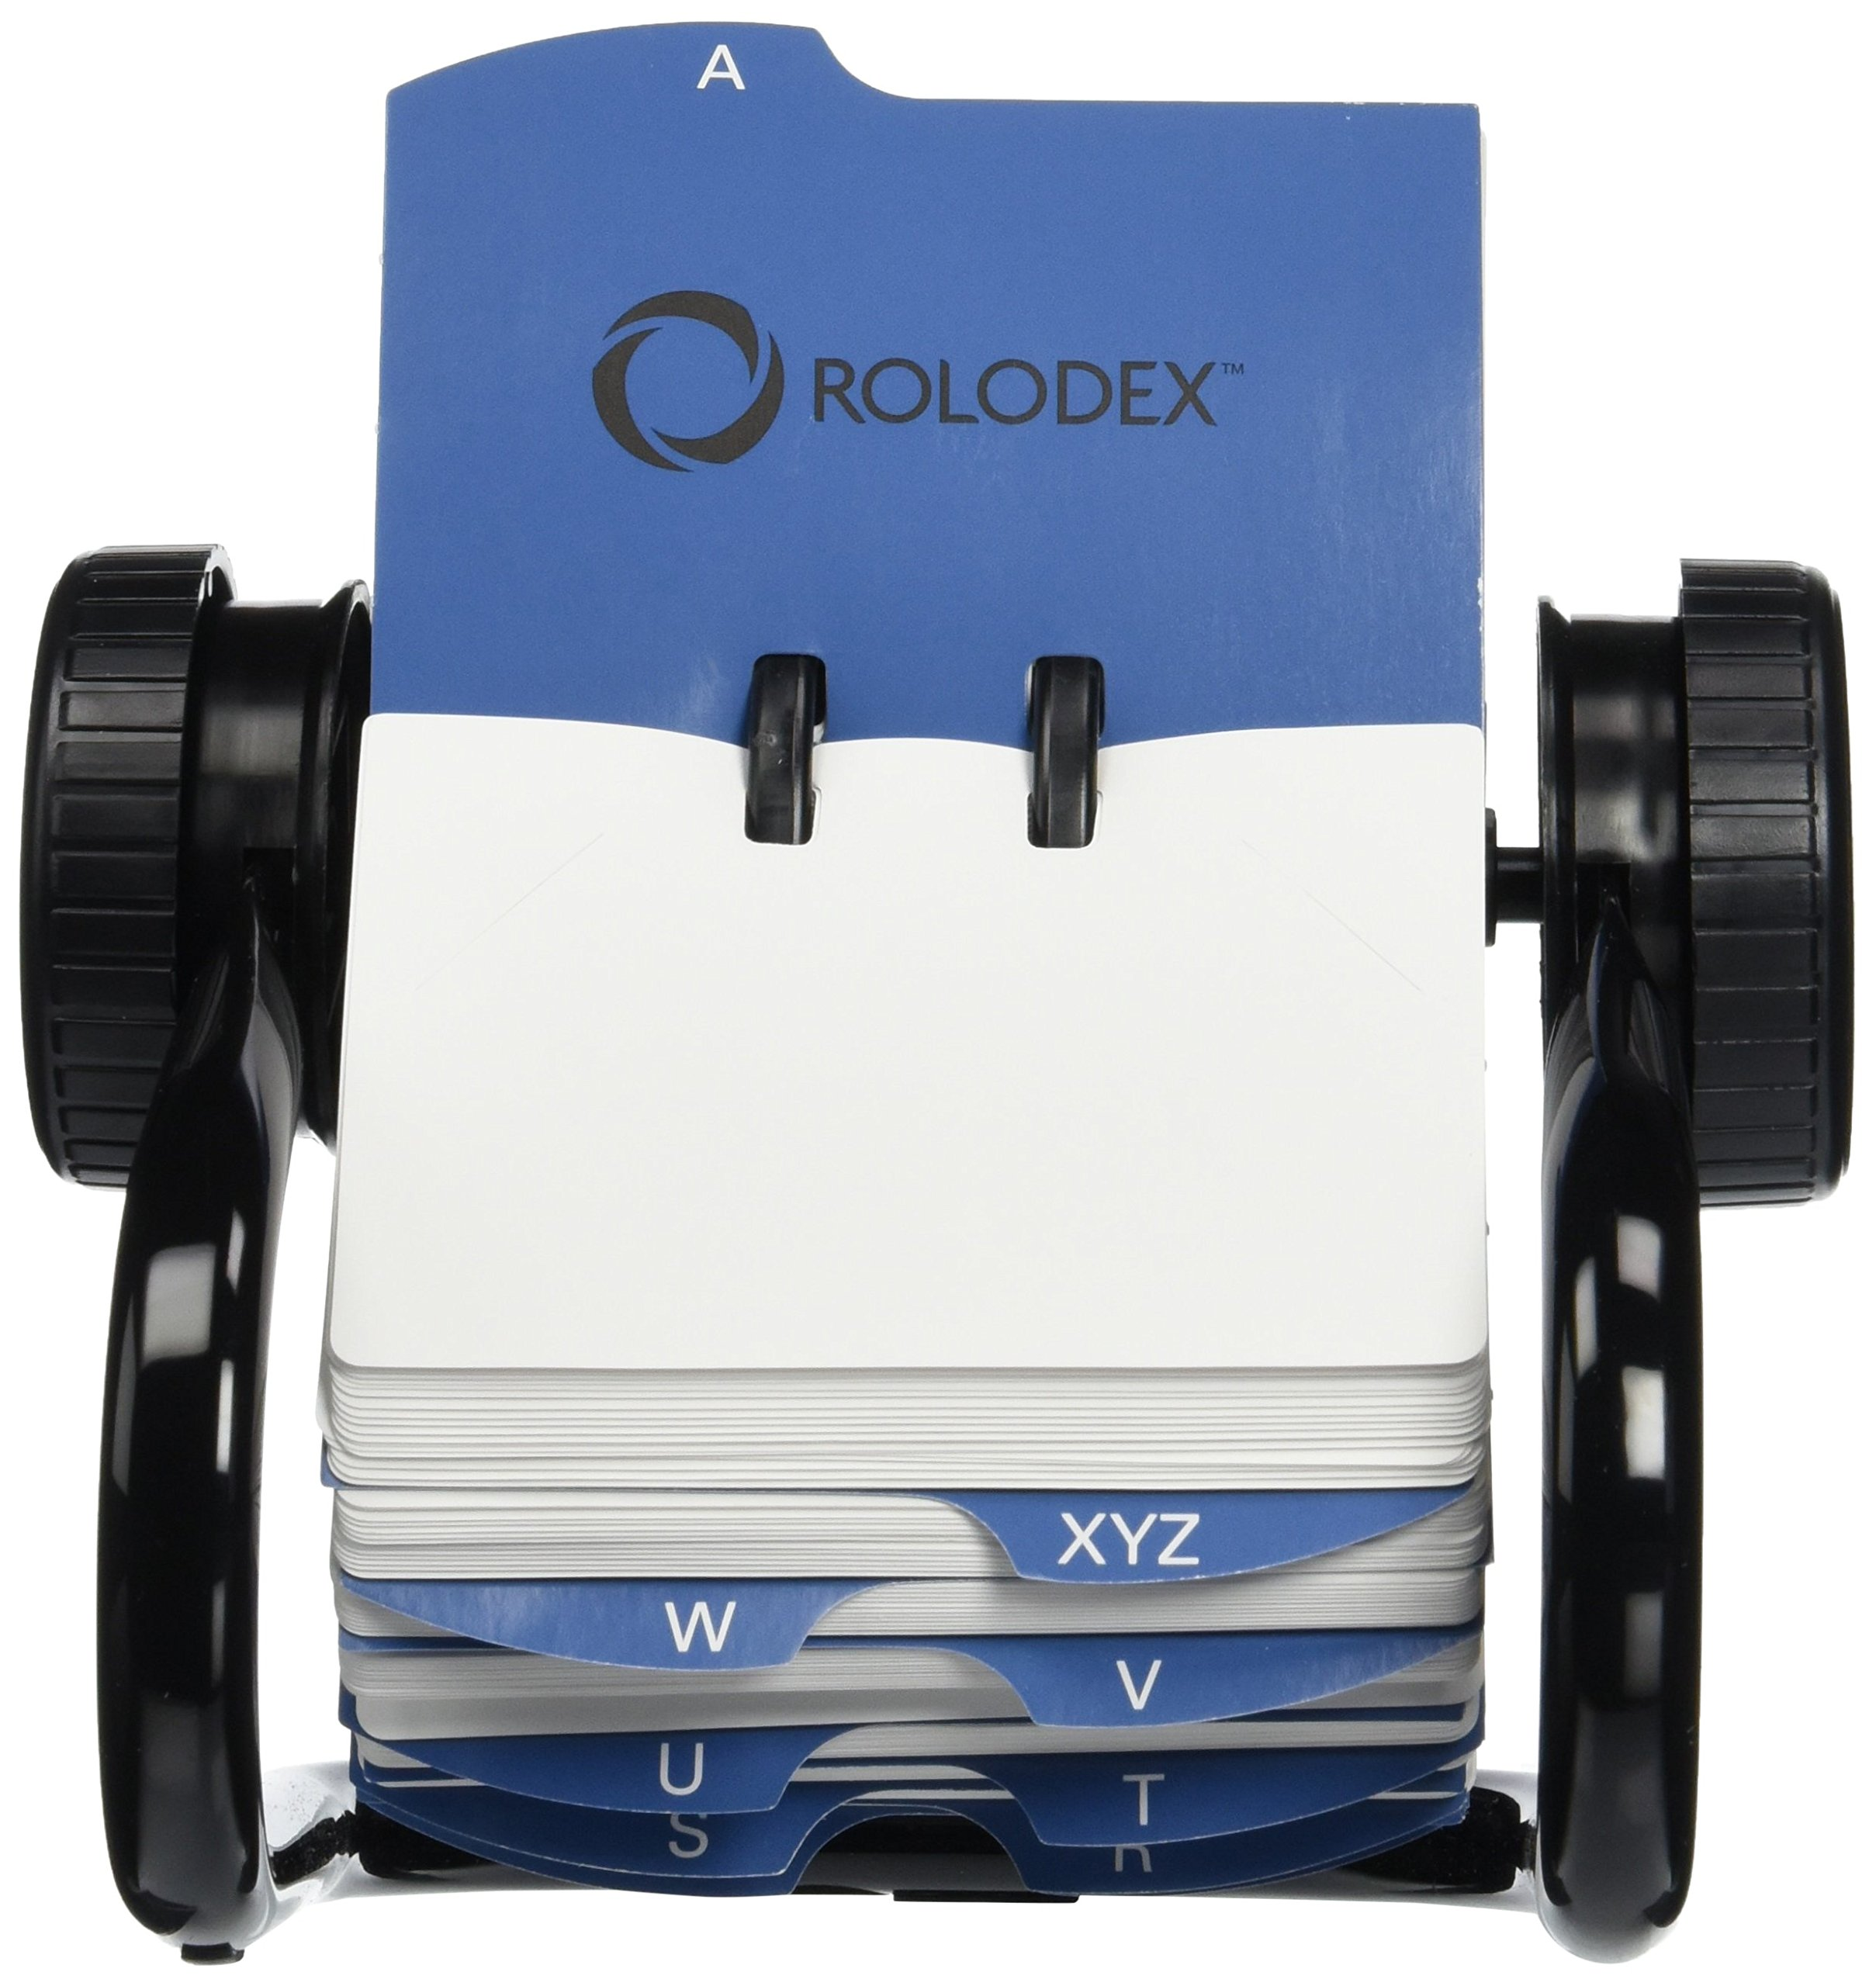 ROL67263 - Rolodex Business Card Revolving File by Rolodex